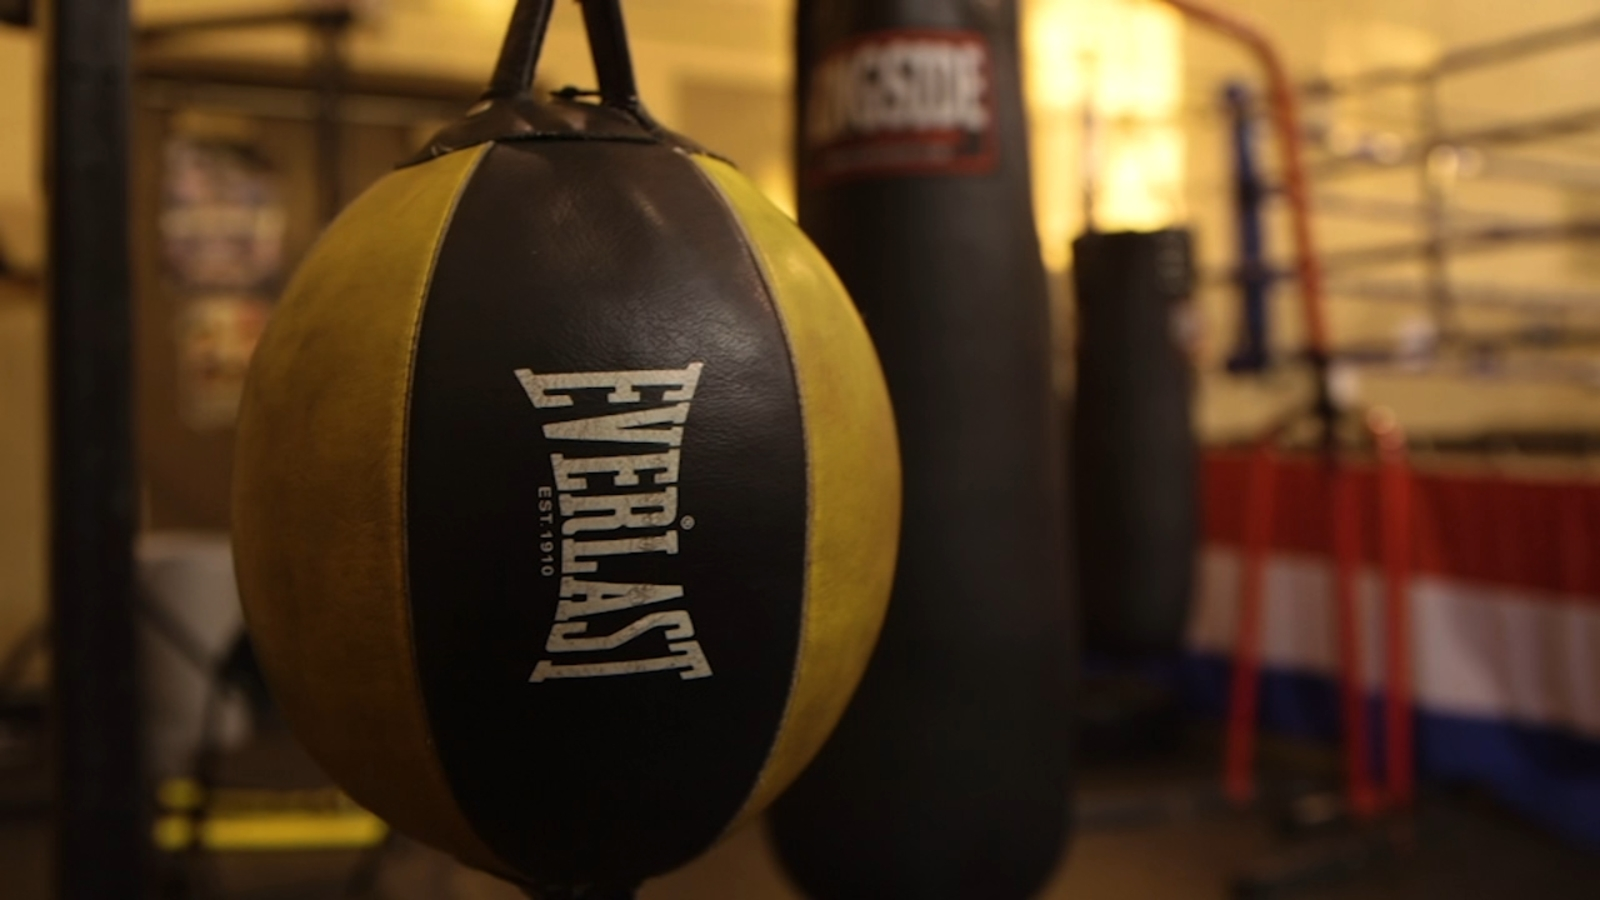 Youth boxing program teaches life skills, showcases thousands at weekly fights in Chicago parks